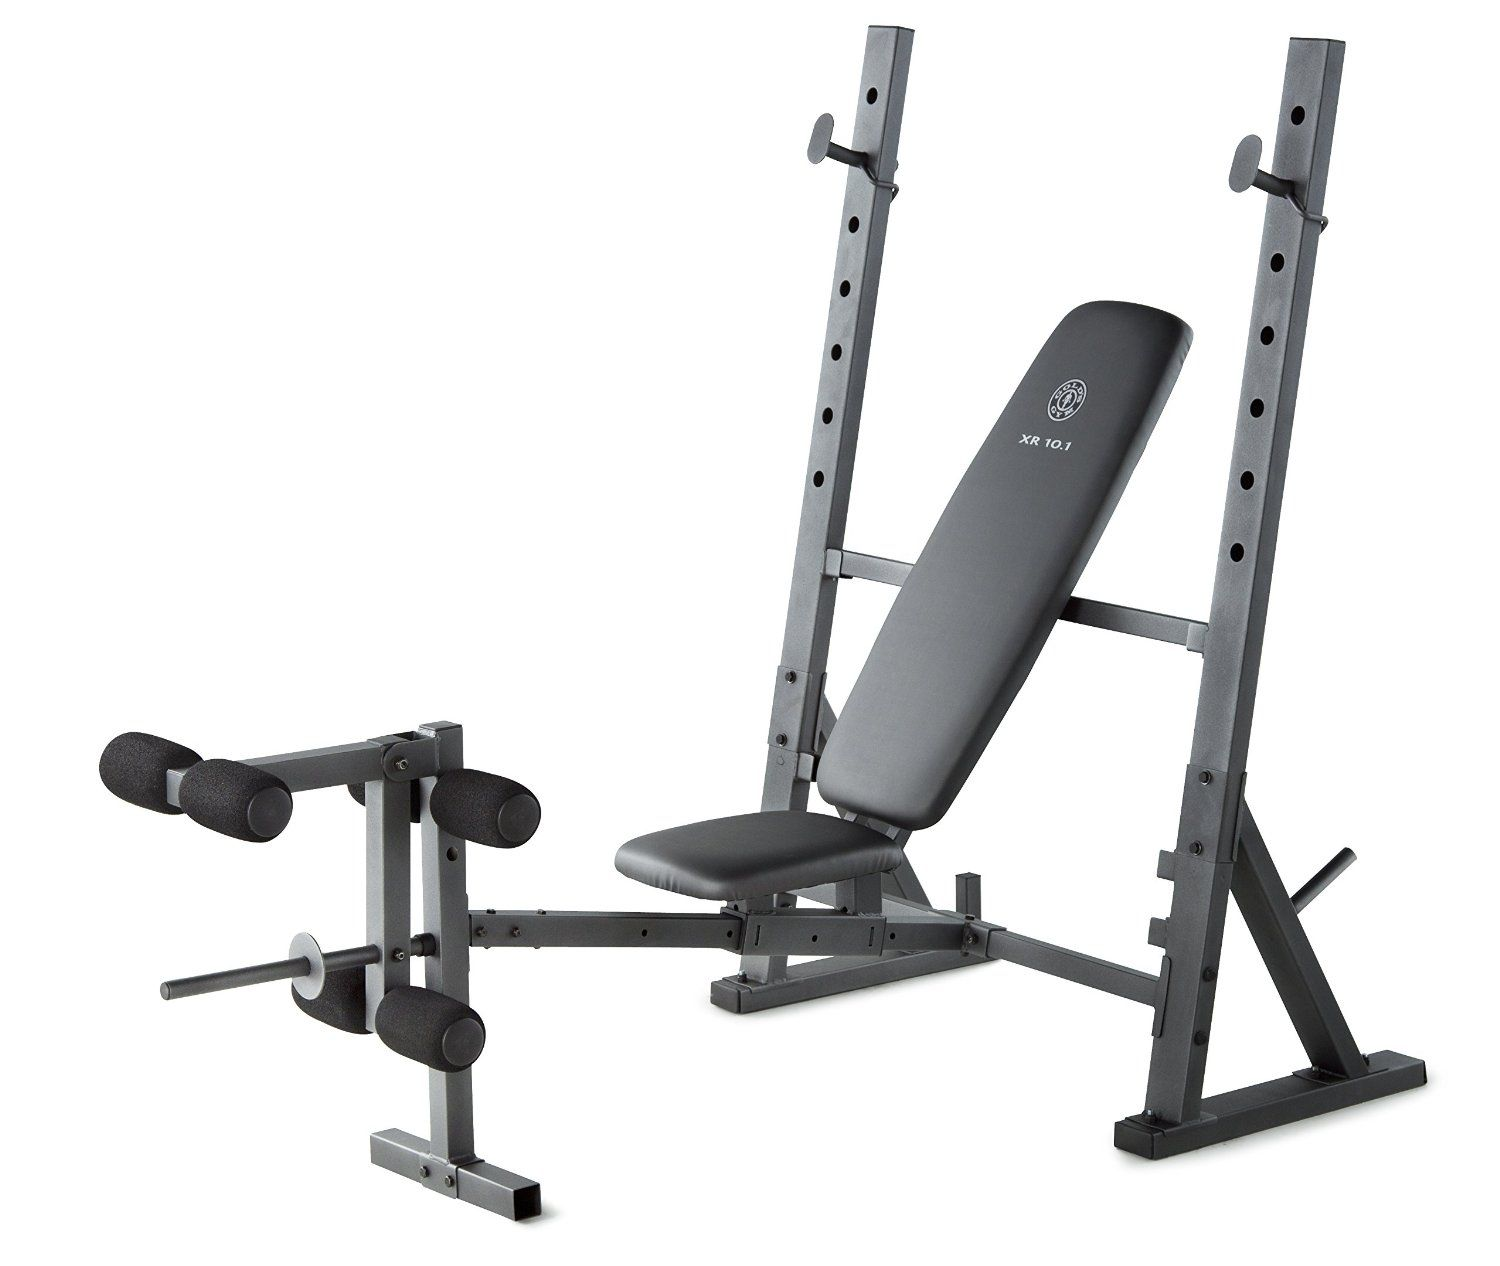 Amazon.com : golds gym xr 10.1 weight bench : sports & outdoors